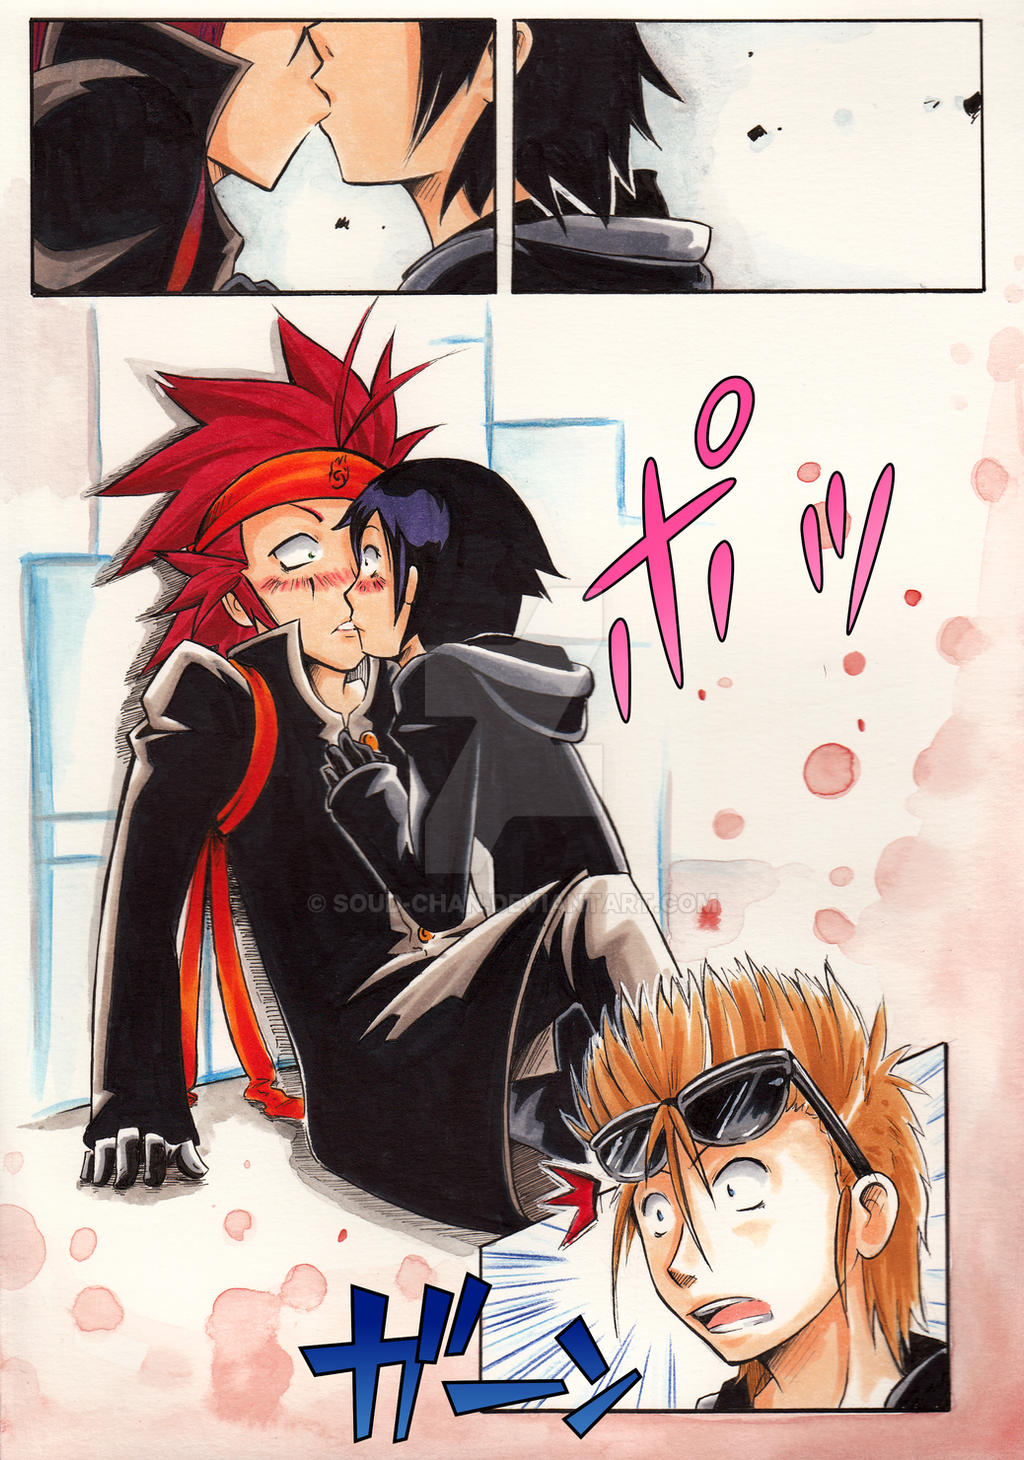 Aex Anime axel xion kisssoud-chan on deviantart